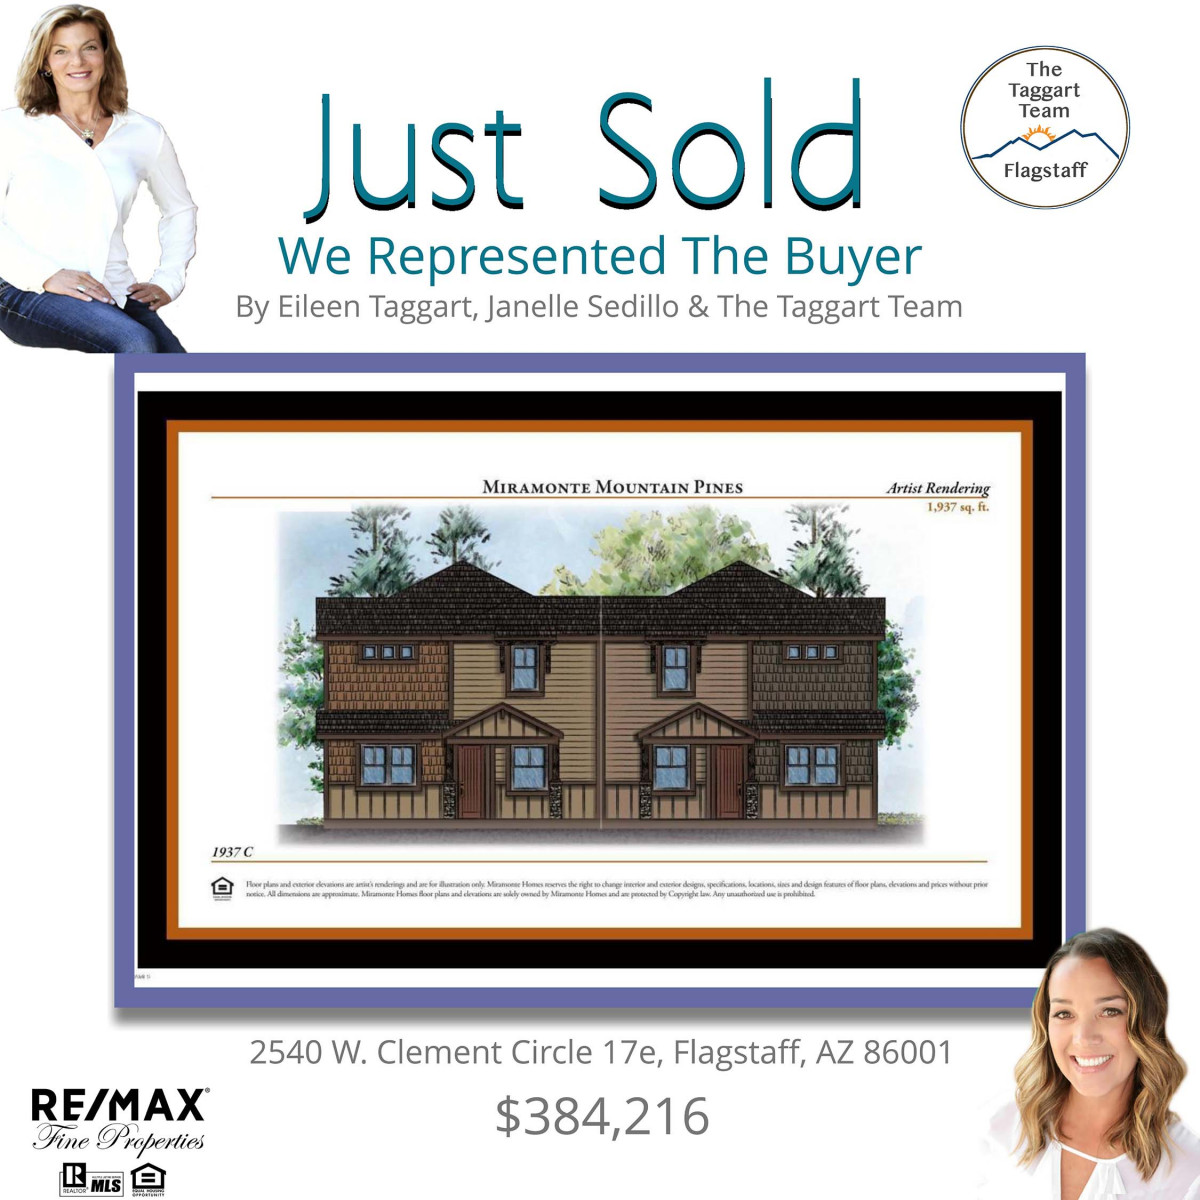 2540 W. Clement Cir 17e Just Sold